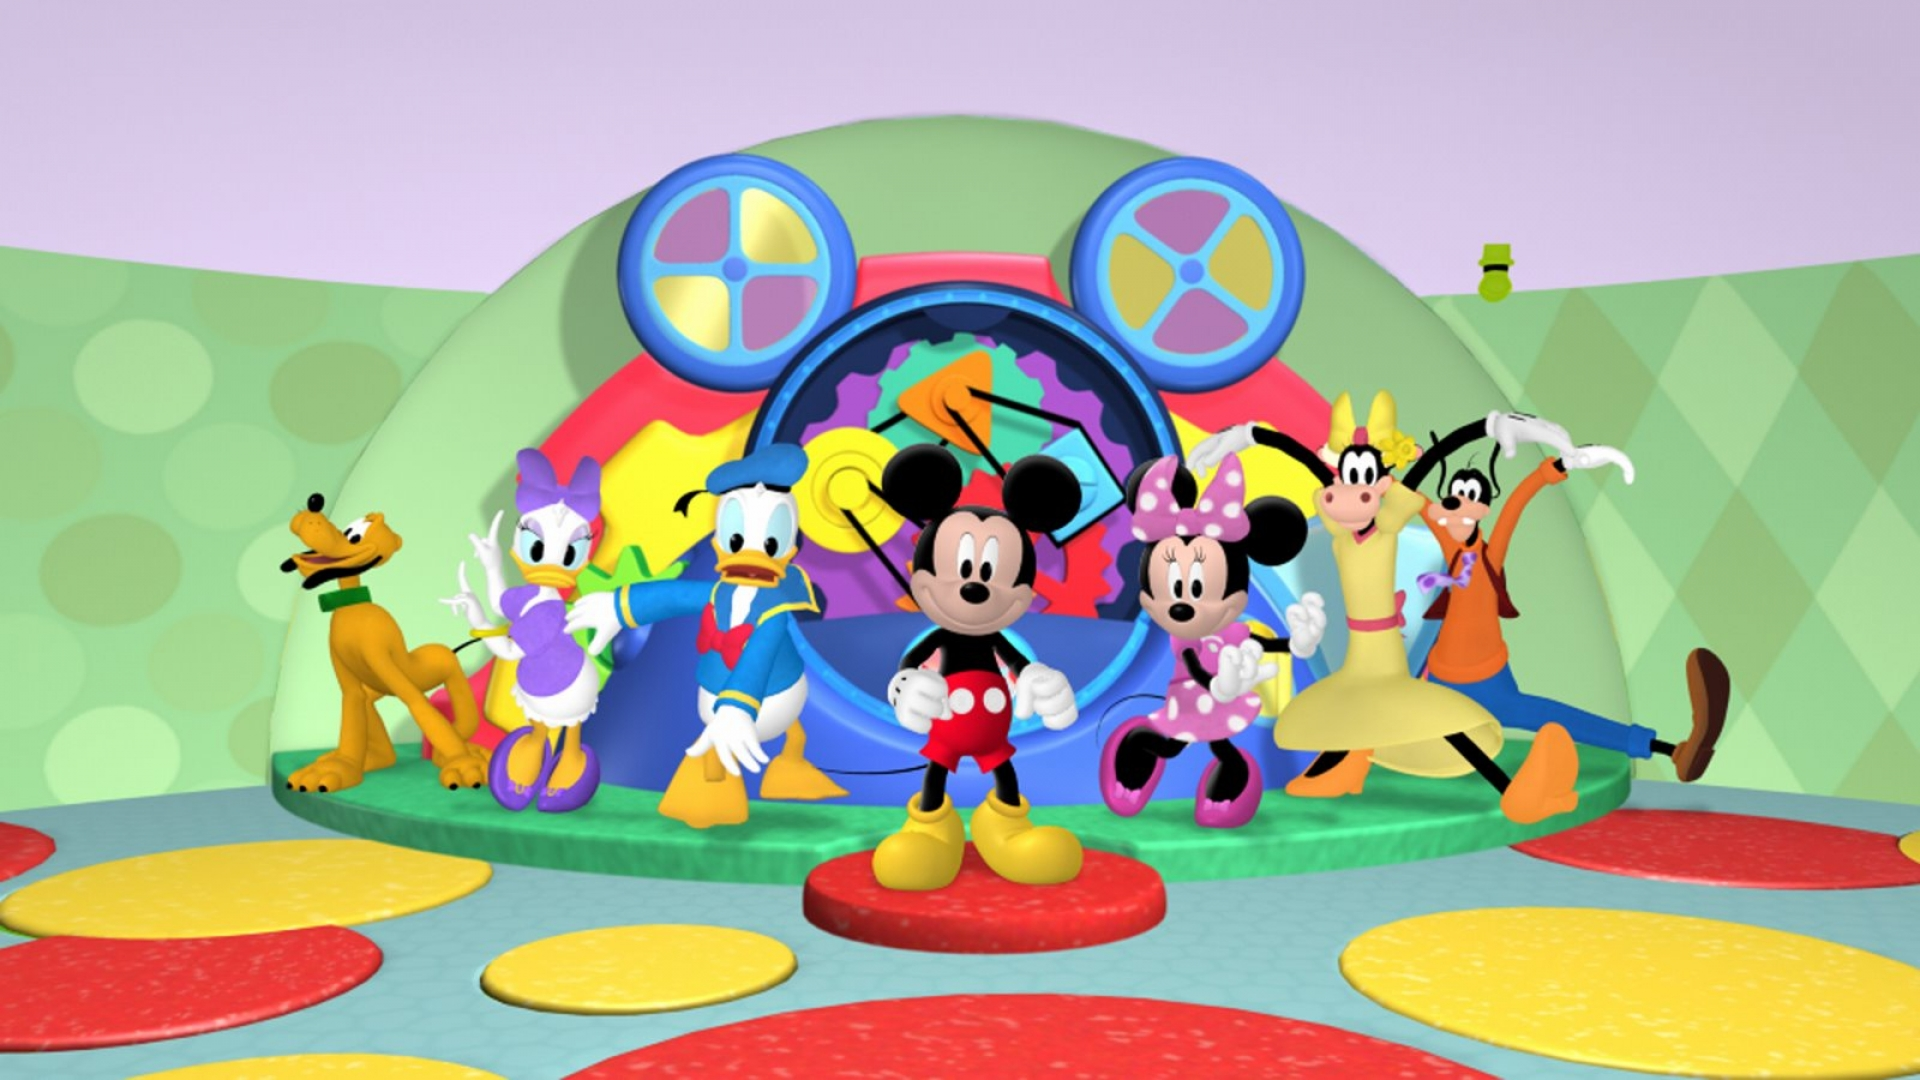 Mickey Mouse Pictures 238 Widescreen Backgrounds